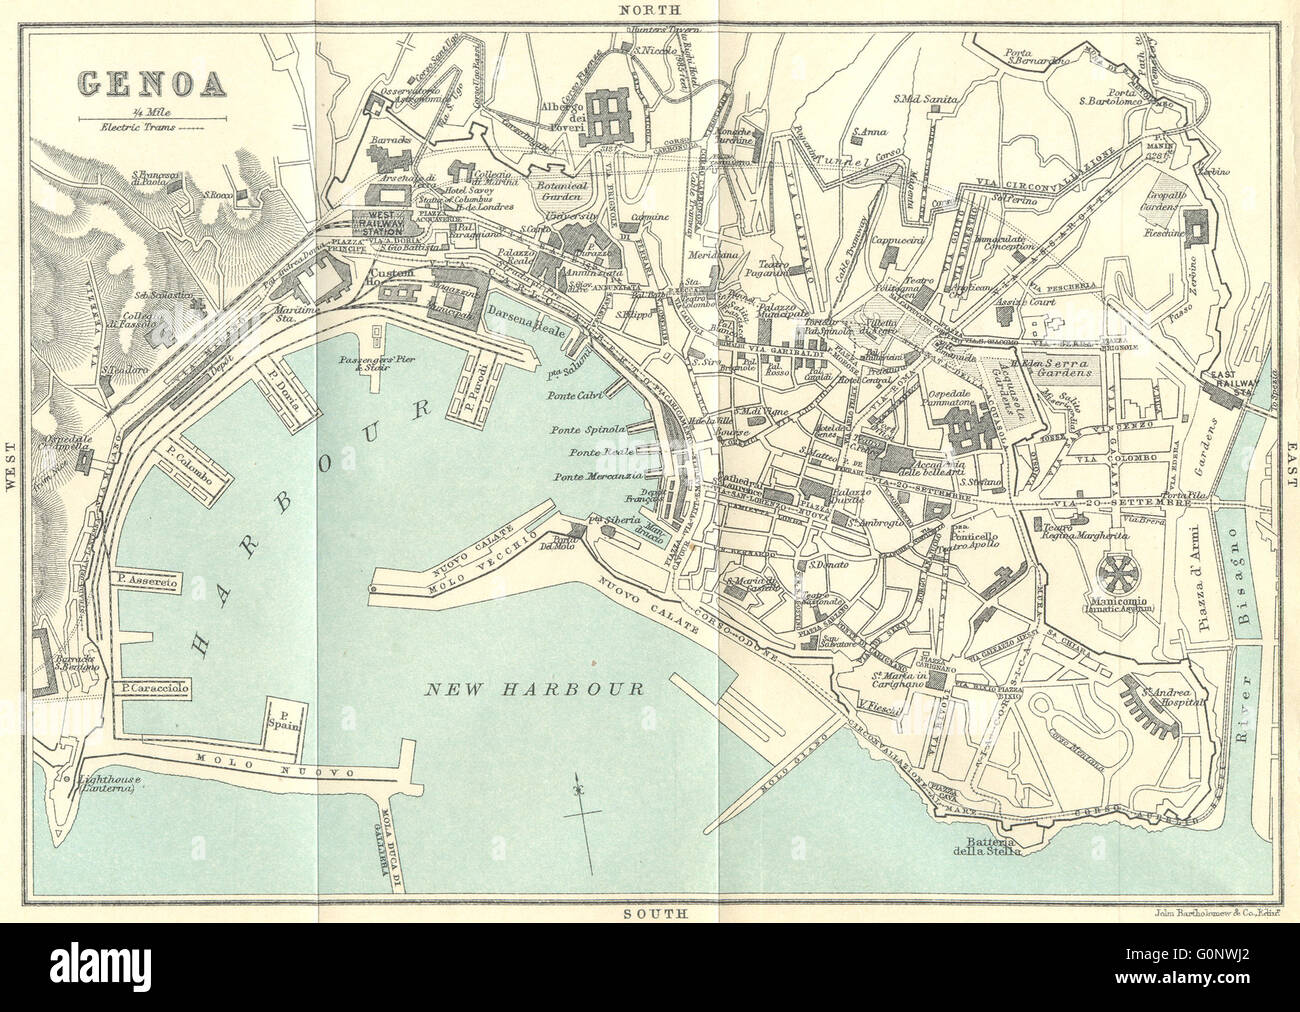 ITALY Genoa 1913 antique map Stock Photo Royalty Free Image